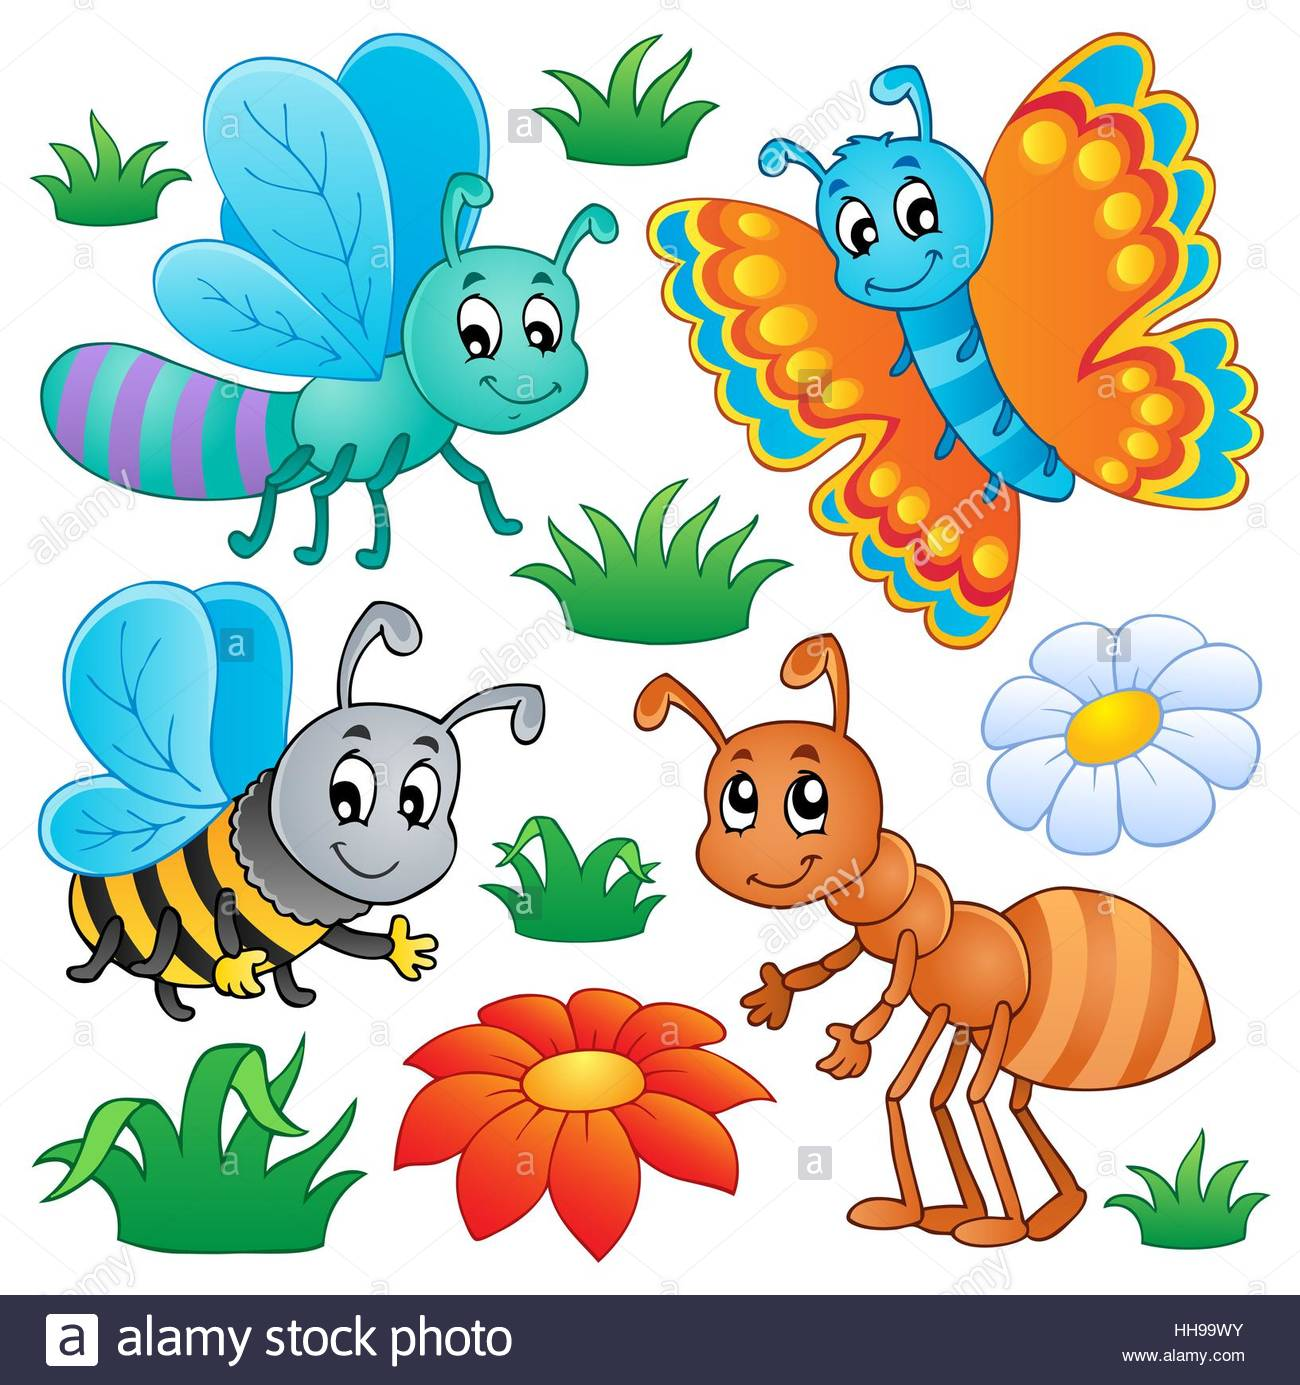 Clipart laughing bee jpg download Insect, Ant, Butterfly, Honeybee, Bug, Bugs, Bee, Laugh, Laughs ... jpg download